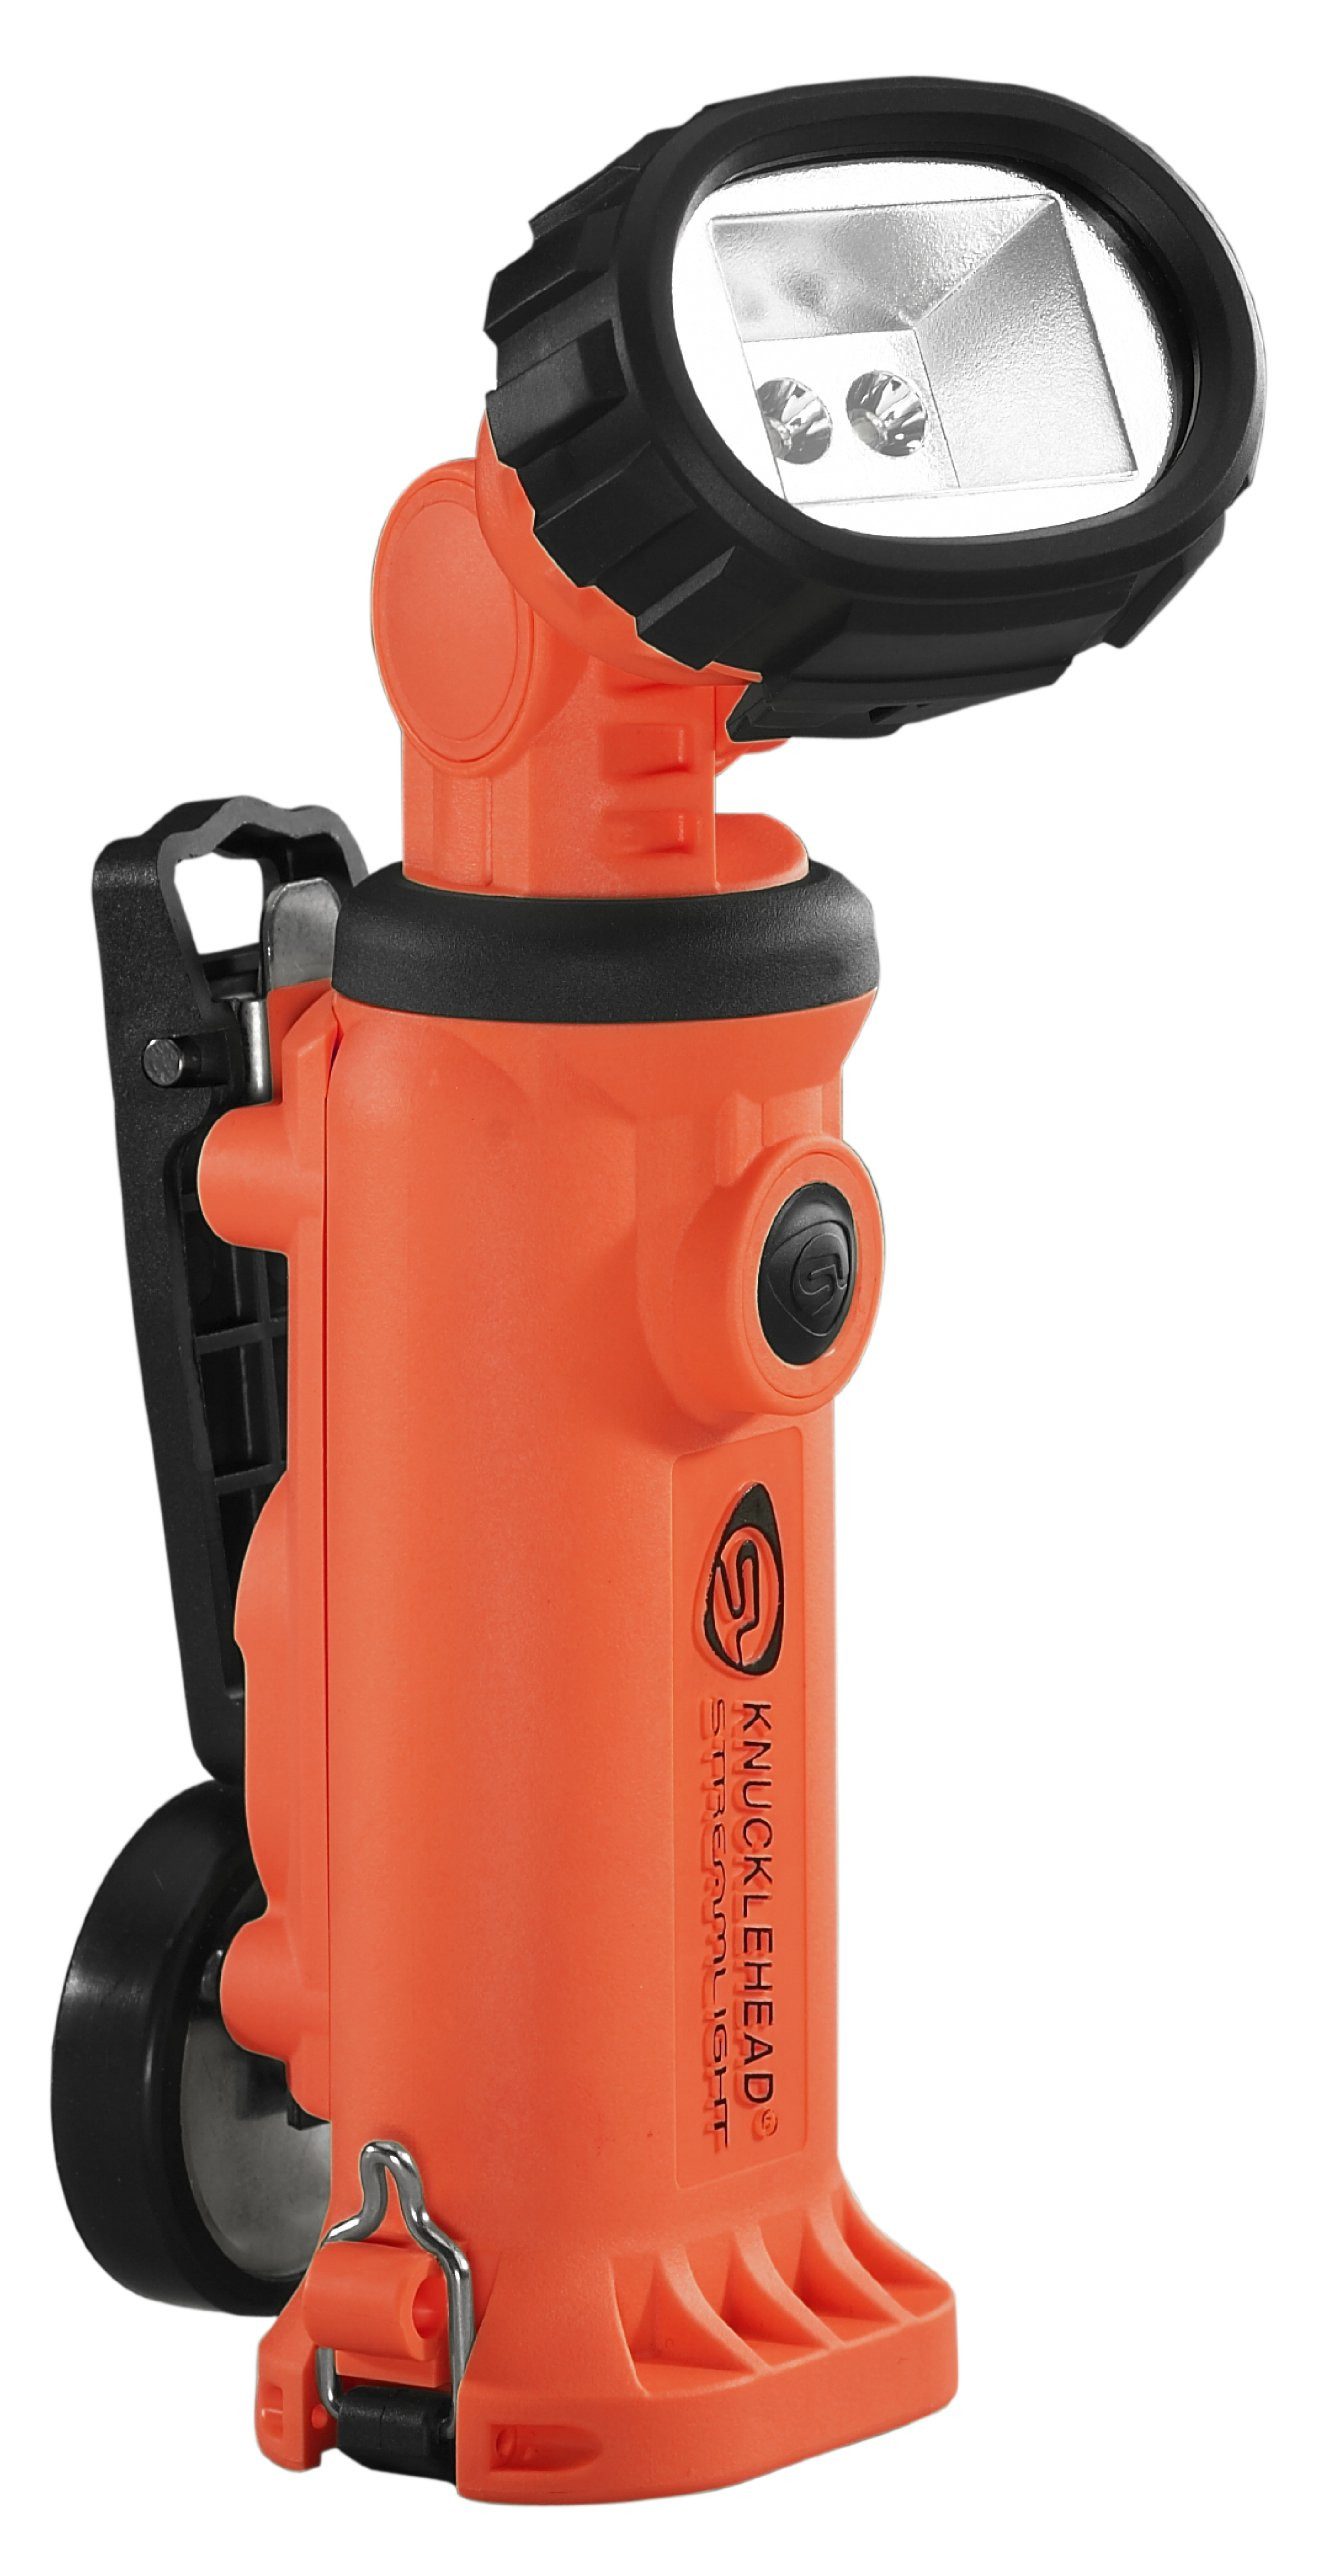 Streamlight 90644 Knucklehead Articulating Head LED Work Light with Clip, Orange - 200 Lumens